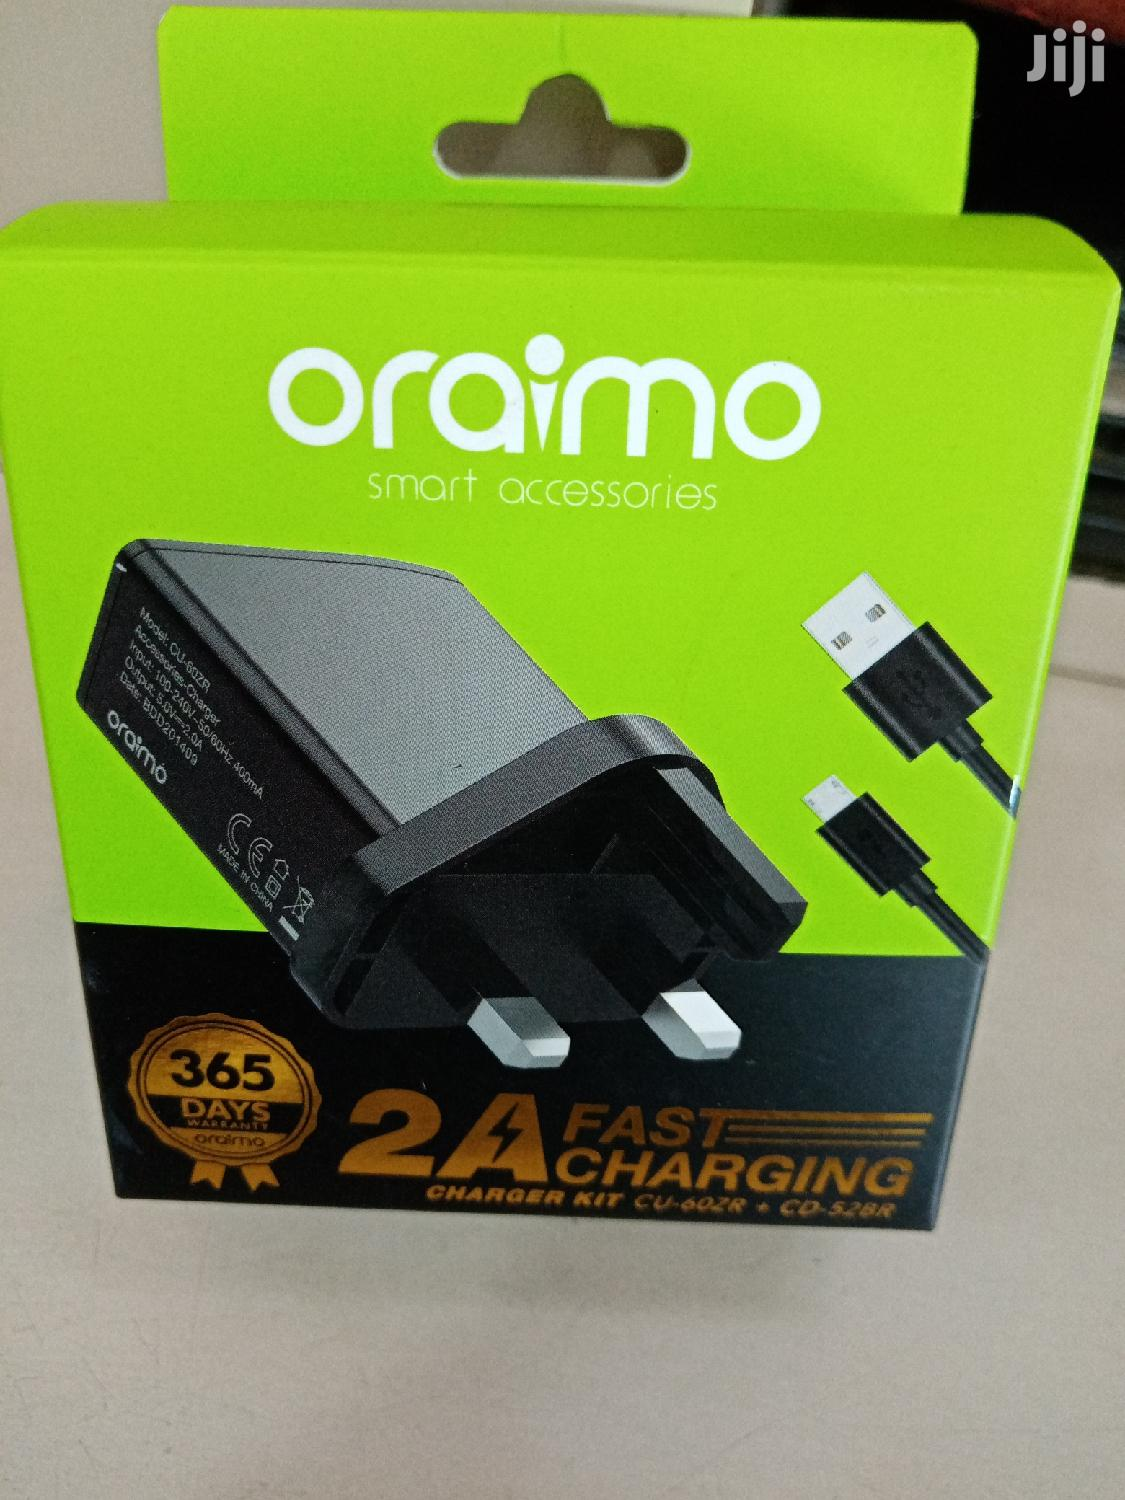 Oraimo Charger | Accessories for Mobile Phones & Tablets for sale in Nairobi Central, Nairobi, Kenya